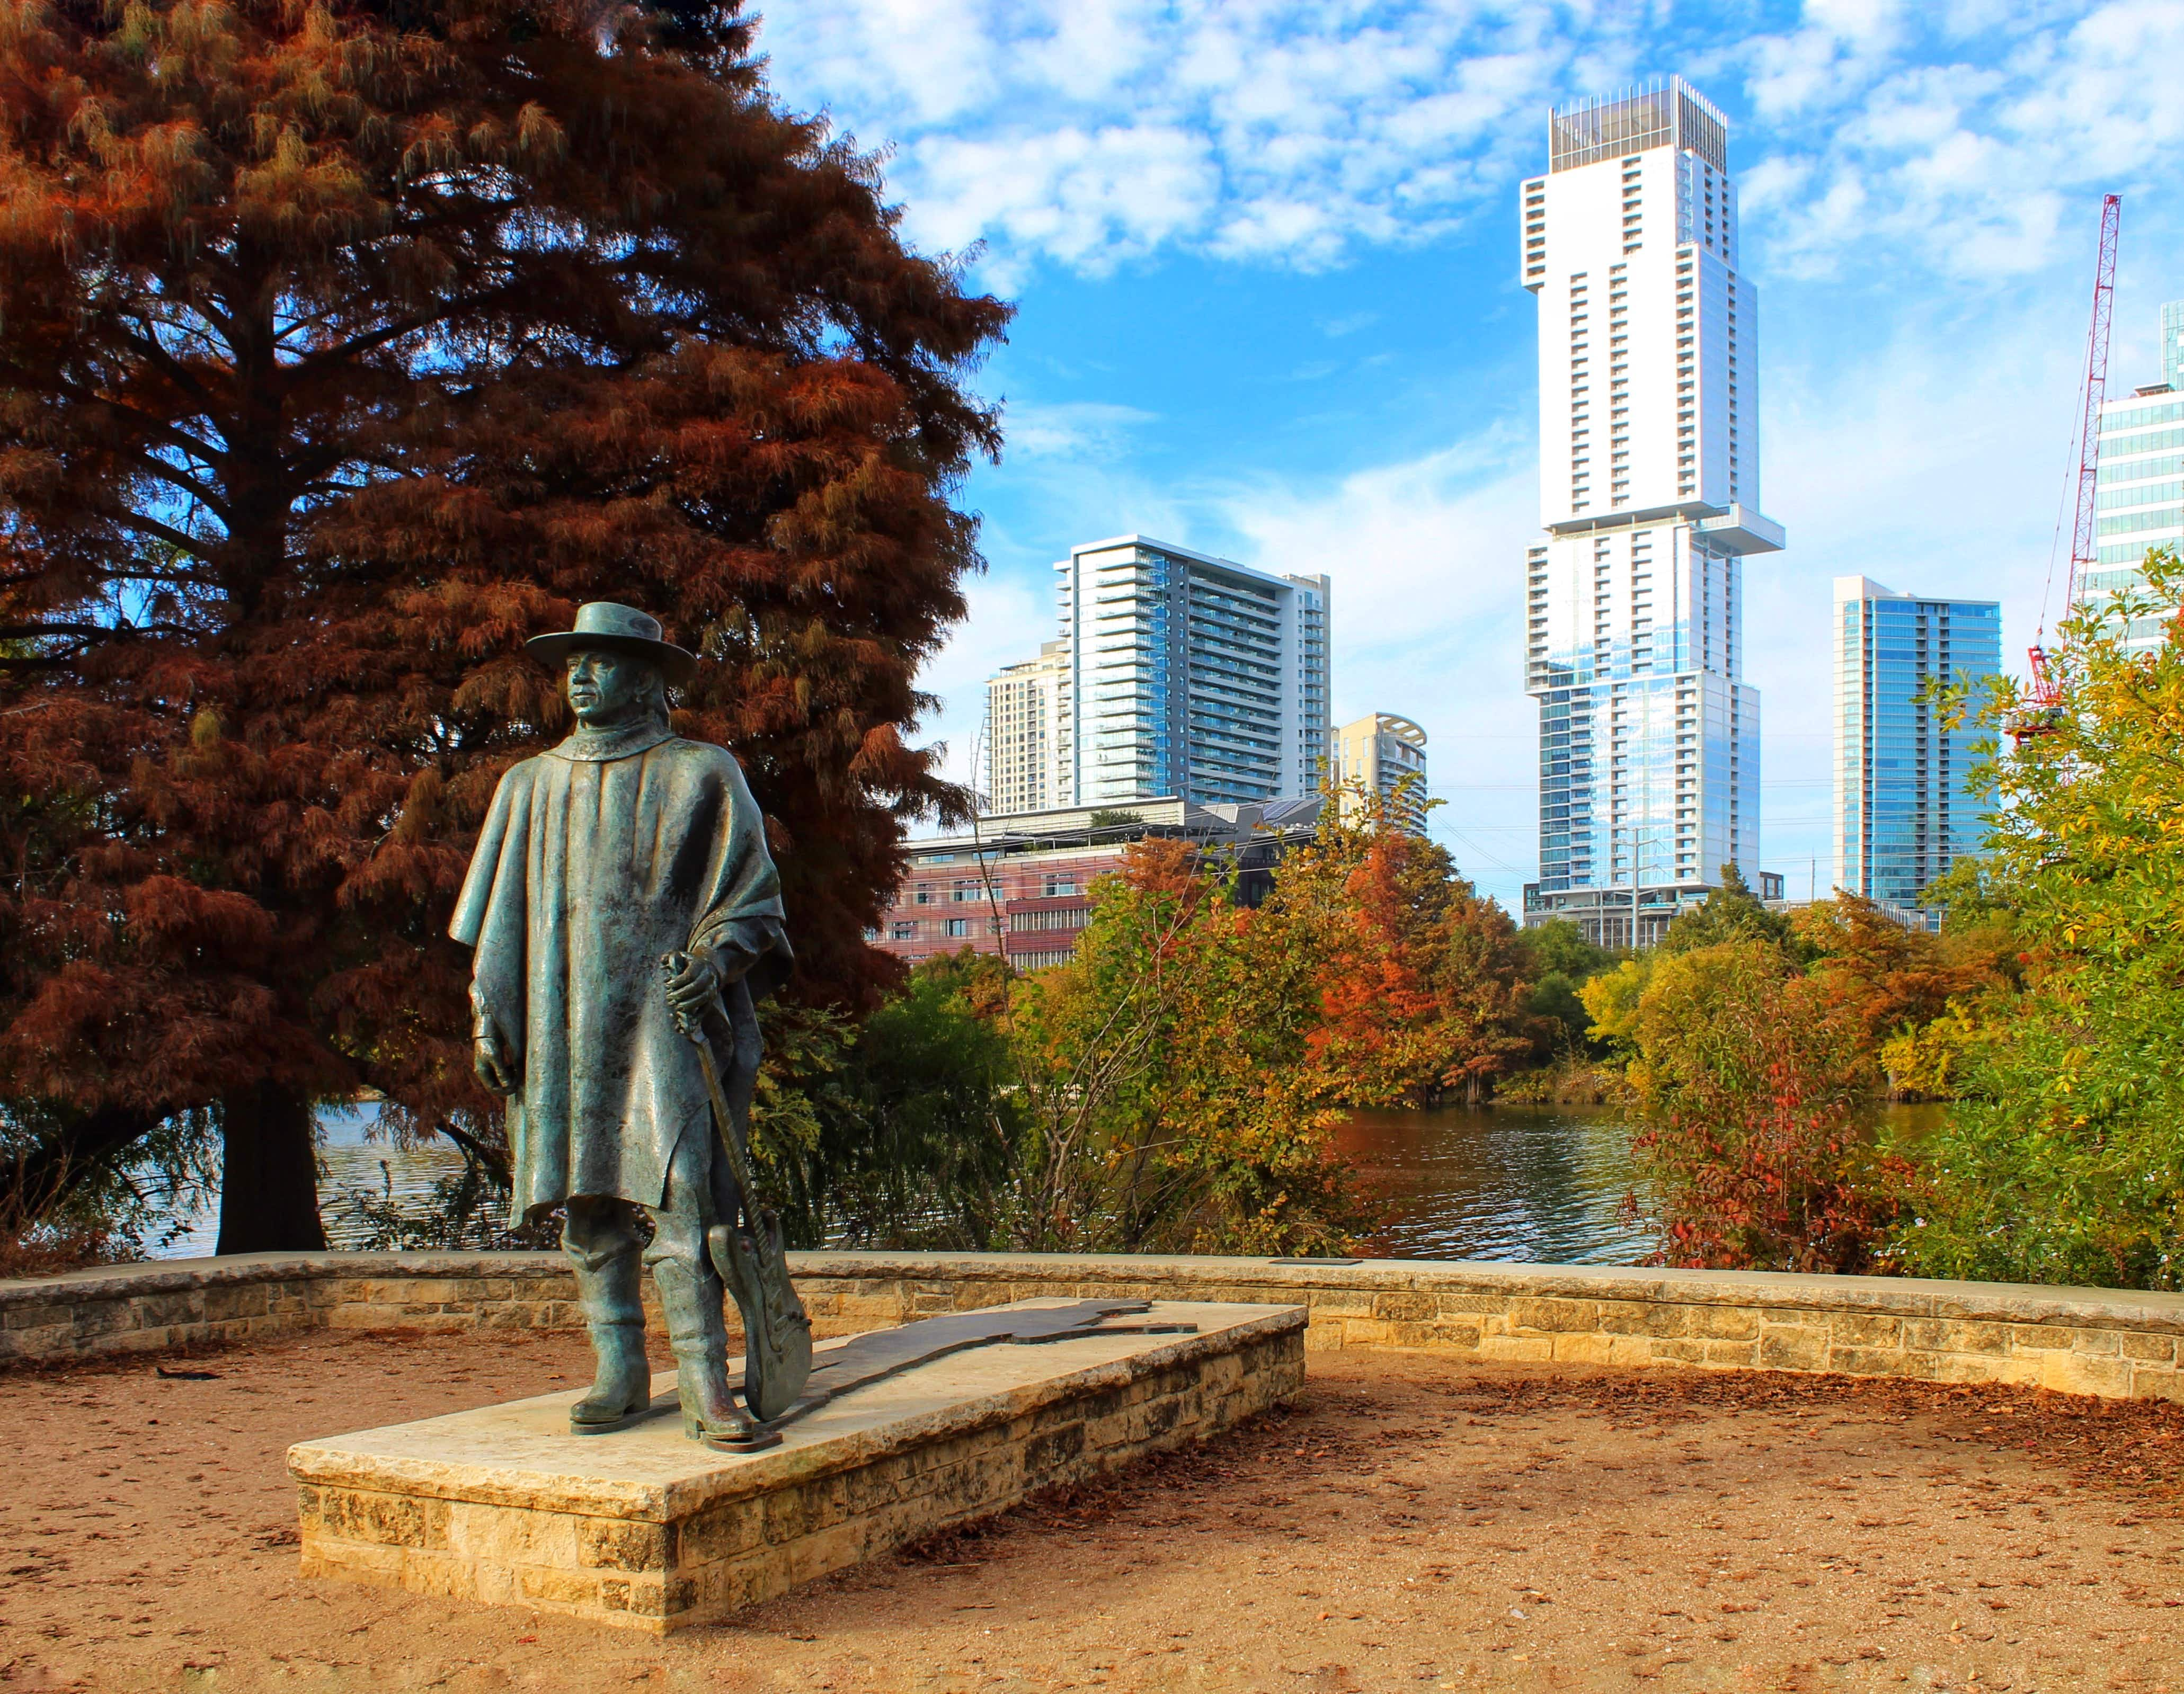 Austin is known for its love of musicians and has paid tribute to one of Texas' finest, Stevie Ray Vaughan, with a statue ©Hannah J. Phillips / Lonely Planet